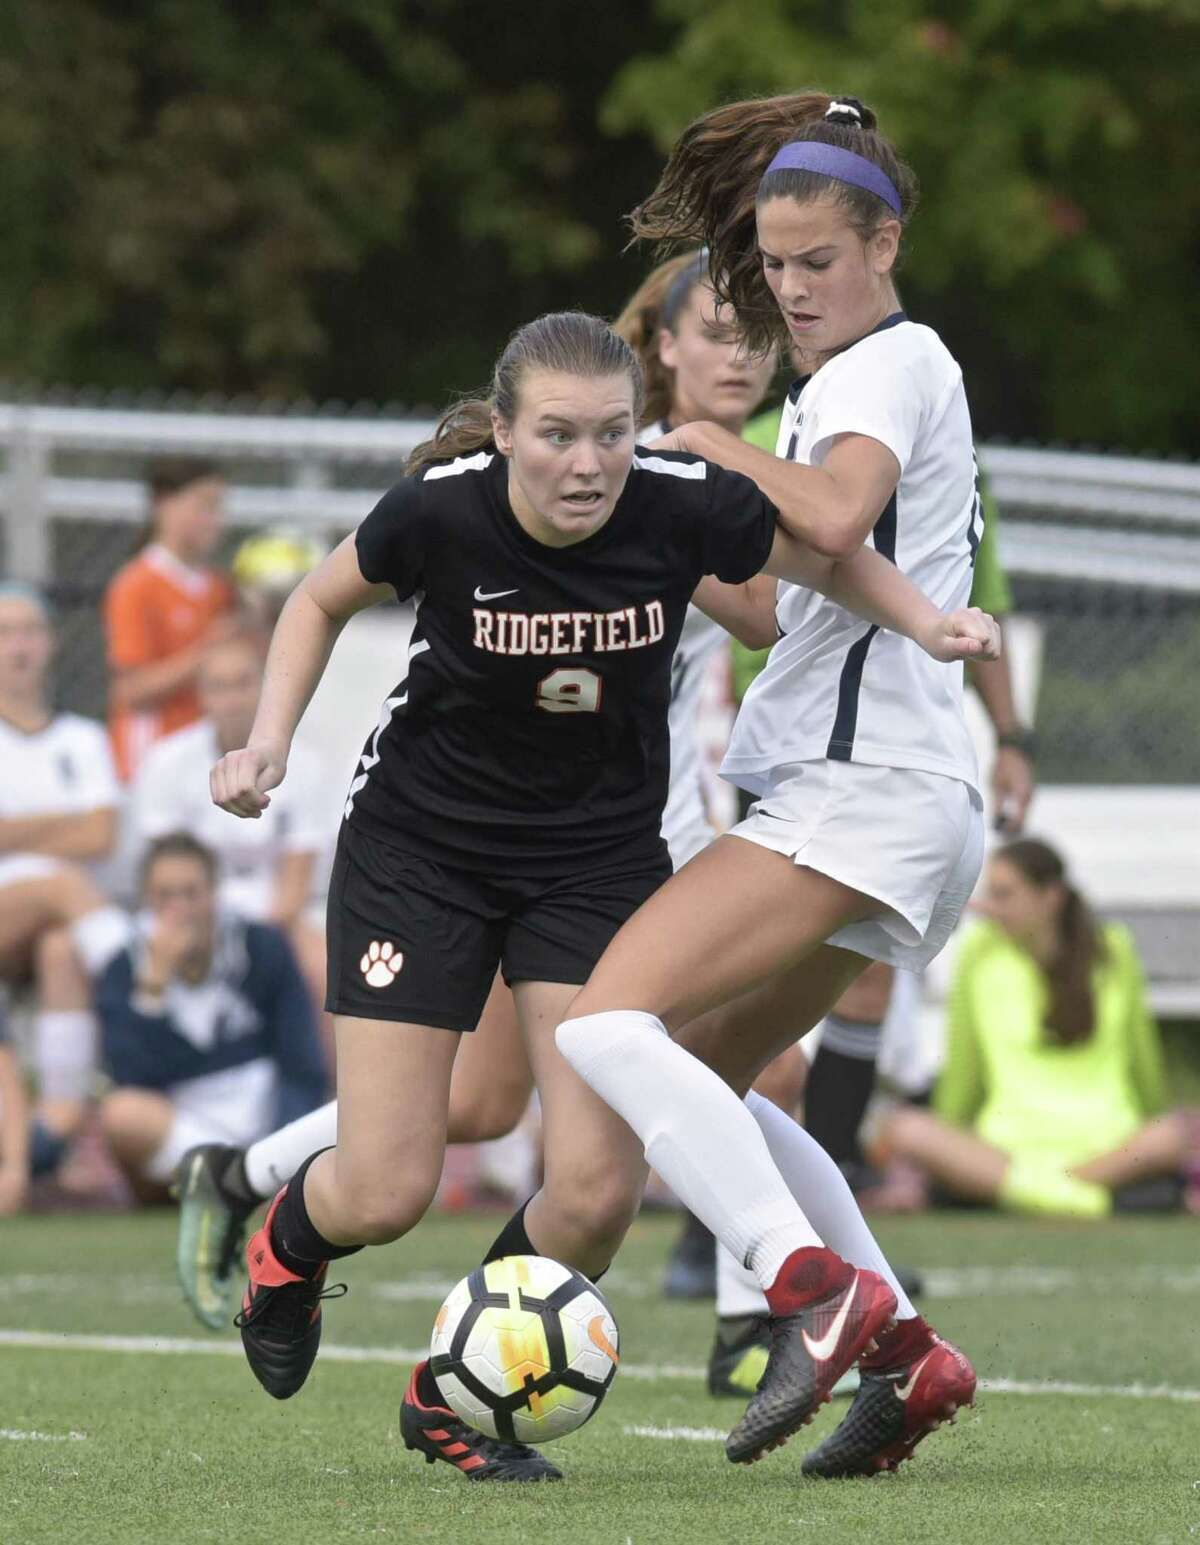 Ridgefield's Mackenzie Robson, left, tries to go around Staples' Mia Gonzalez in Tuesday's game at Ridgefield.